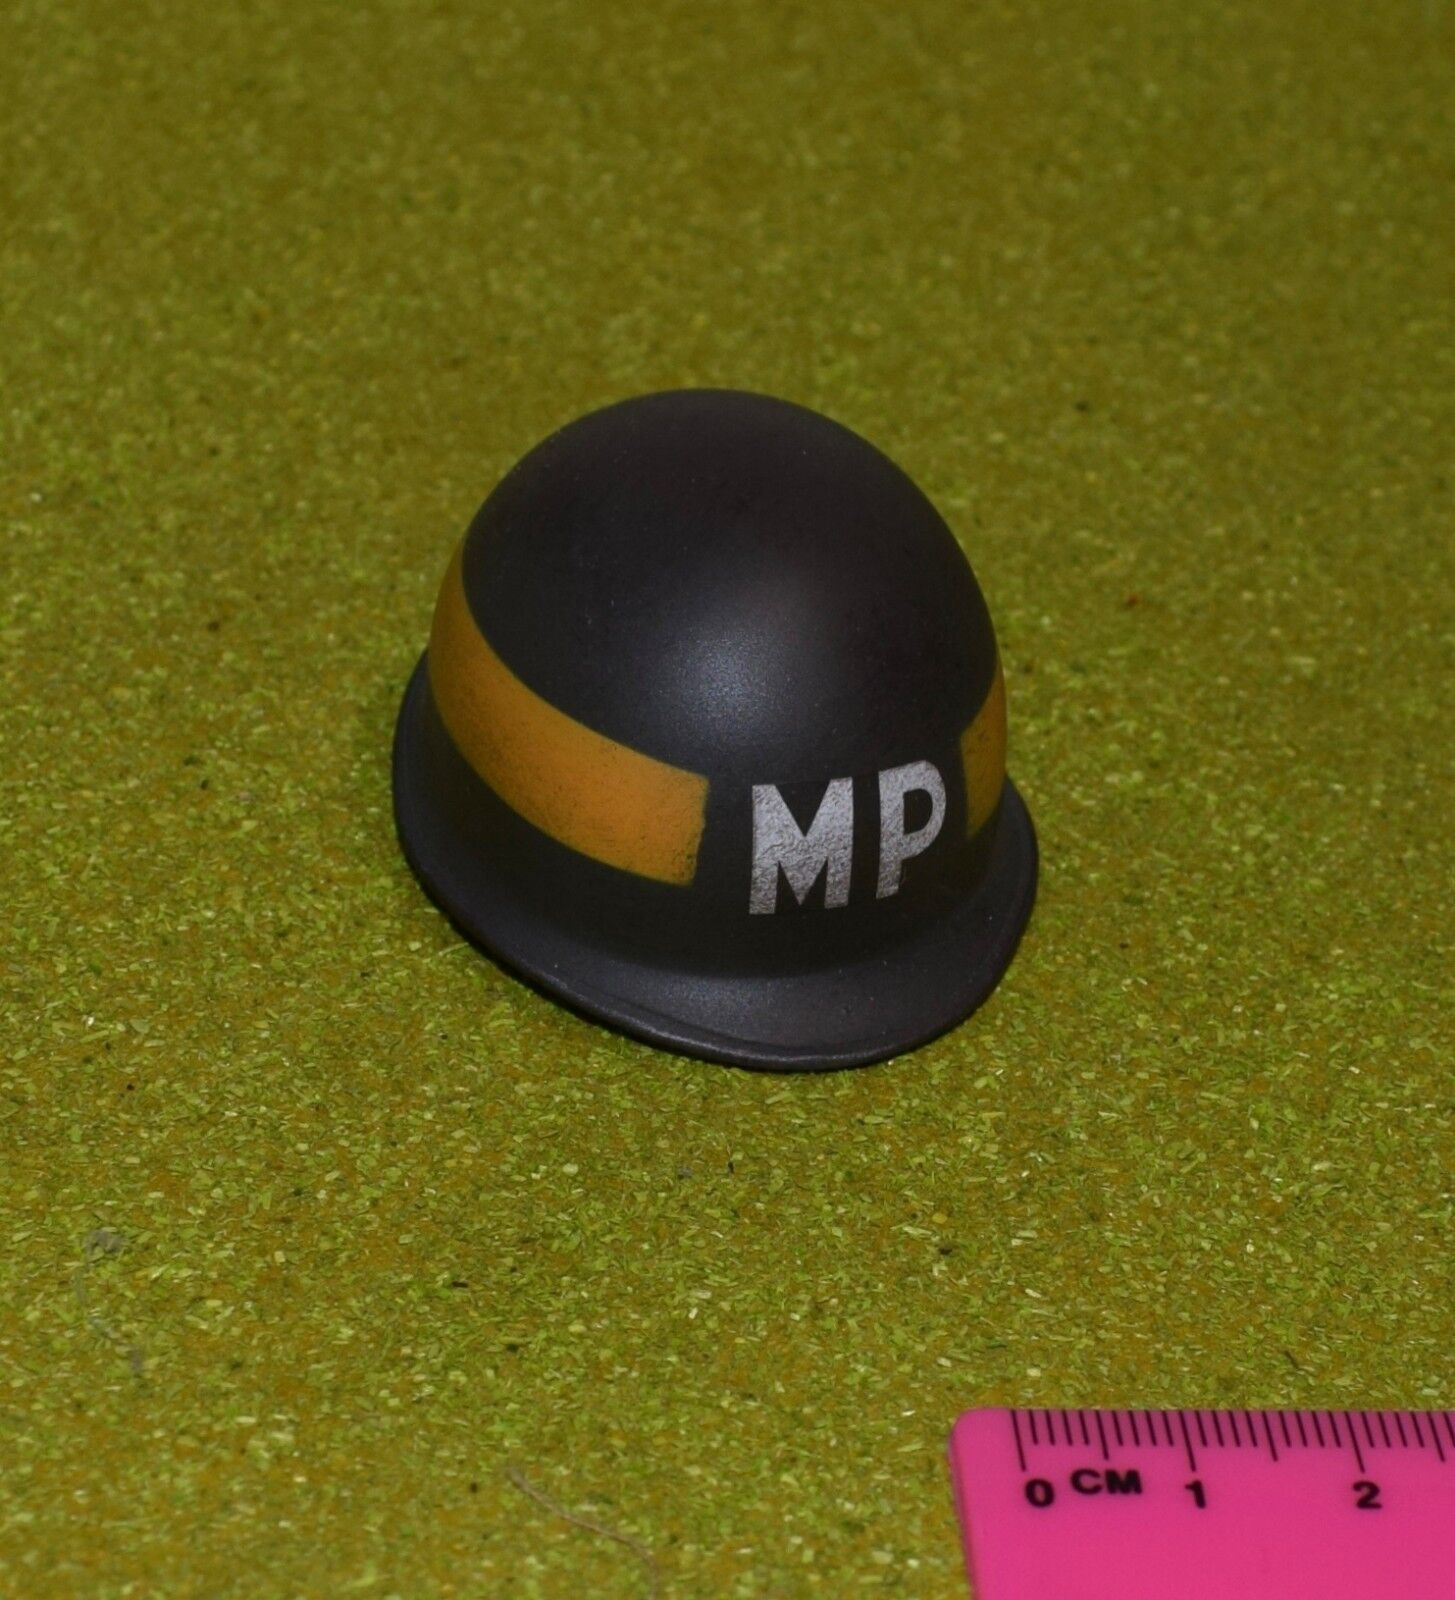 DRAGON IN DREAMS DID 1 6 SCALE WW II US LOOSE MP HELMET METAL FROM BRYAN